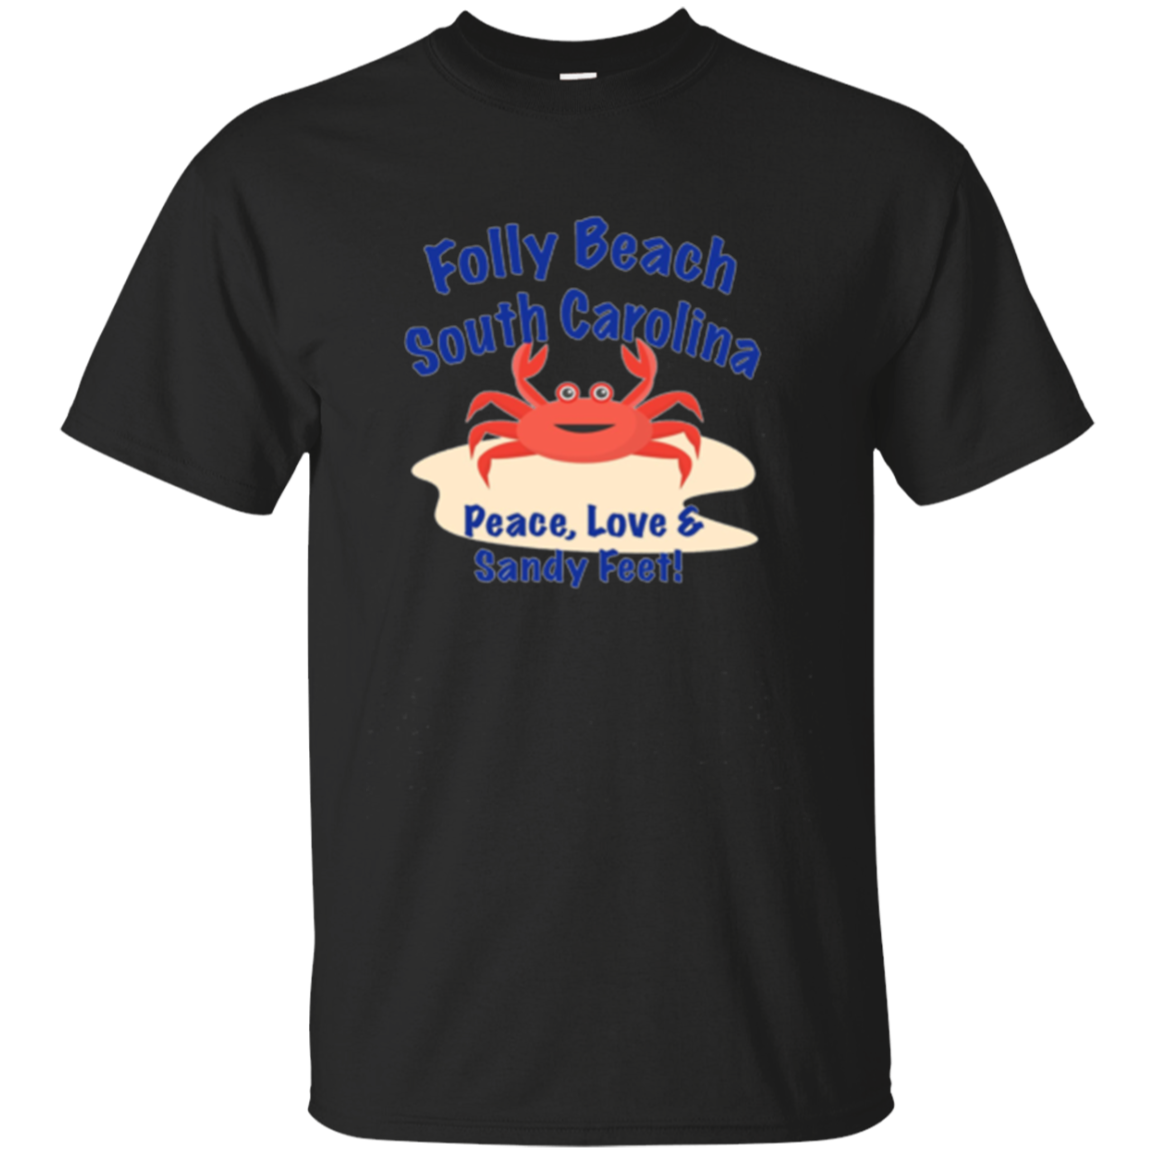 Happy Crab, Folly Beach, South Carolina beach tee shirt